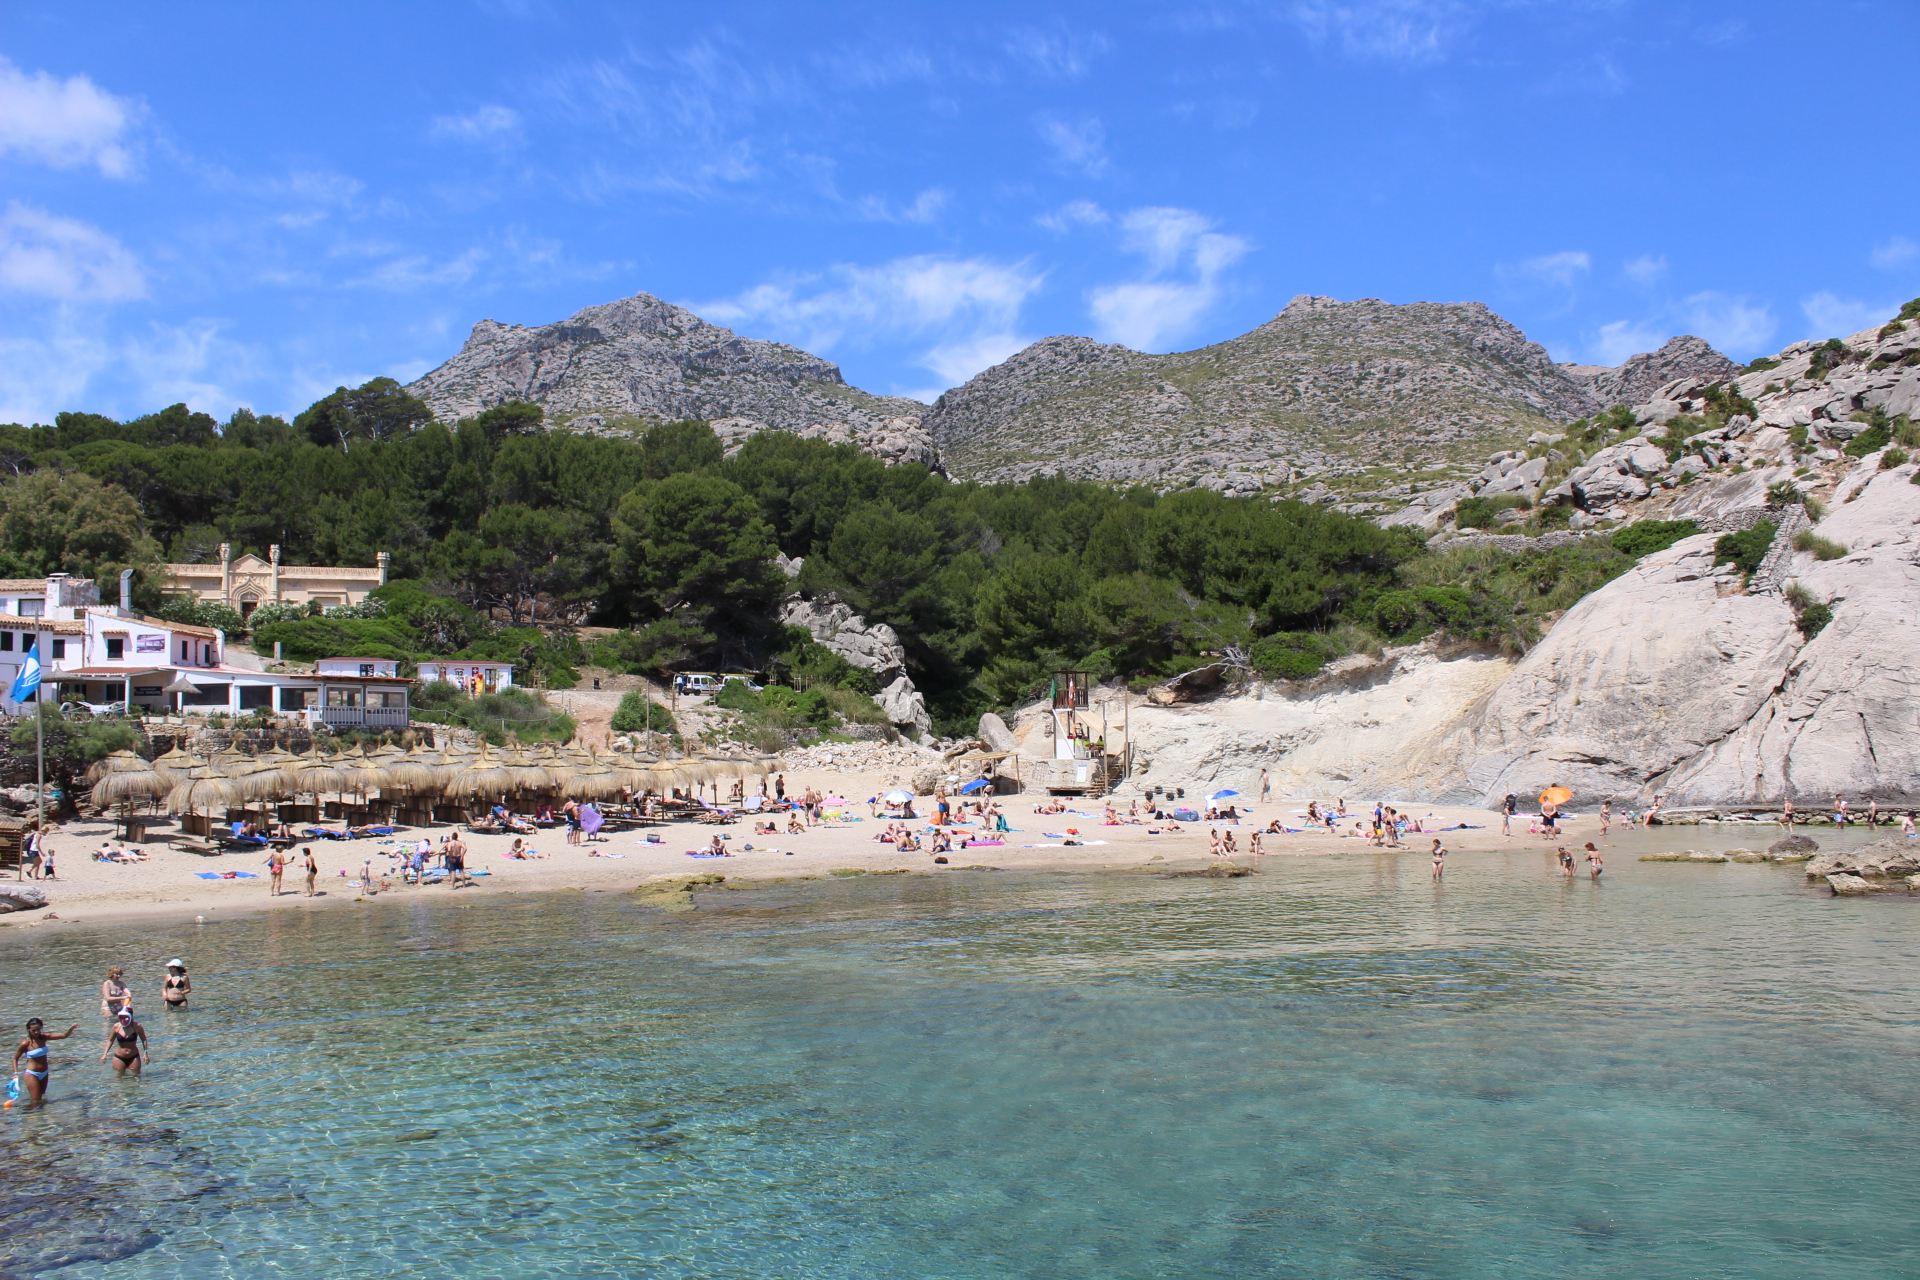 6) Have lunch overlooking the bay in Cala St Vicenc - a lovely beach and much quieter than the Port, with a more laid-back atmosphere. Watch out for jellyfish though if you venture into the bay for a swim